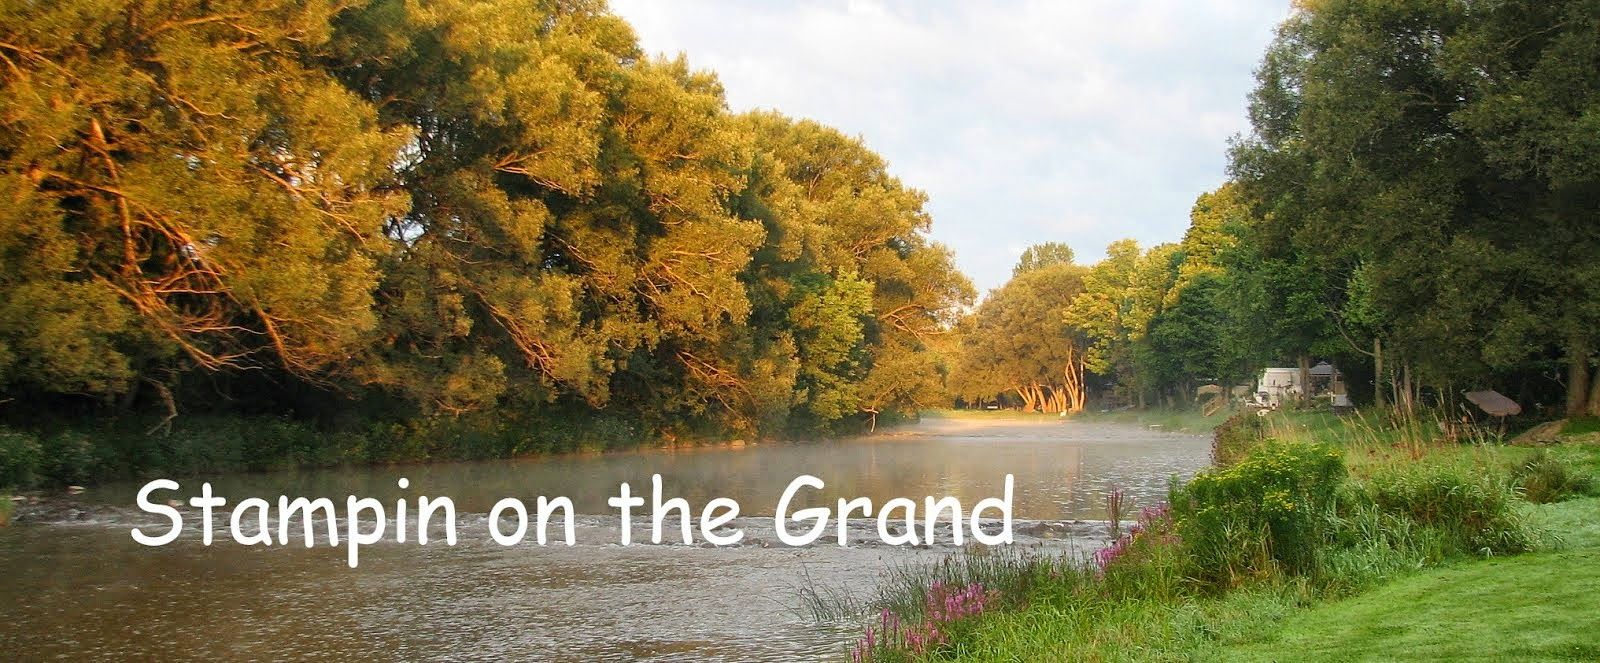 Stampin on the Grand